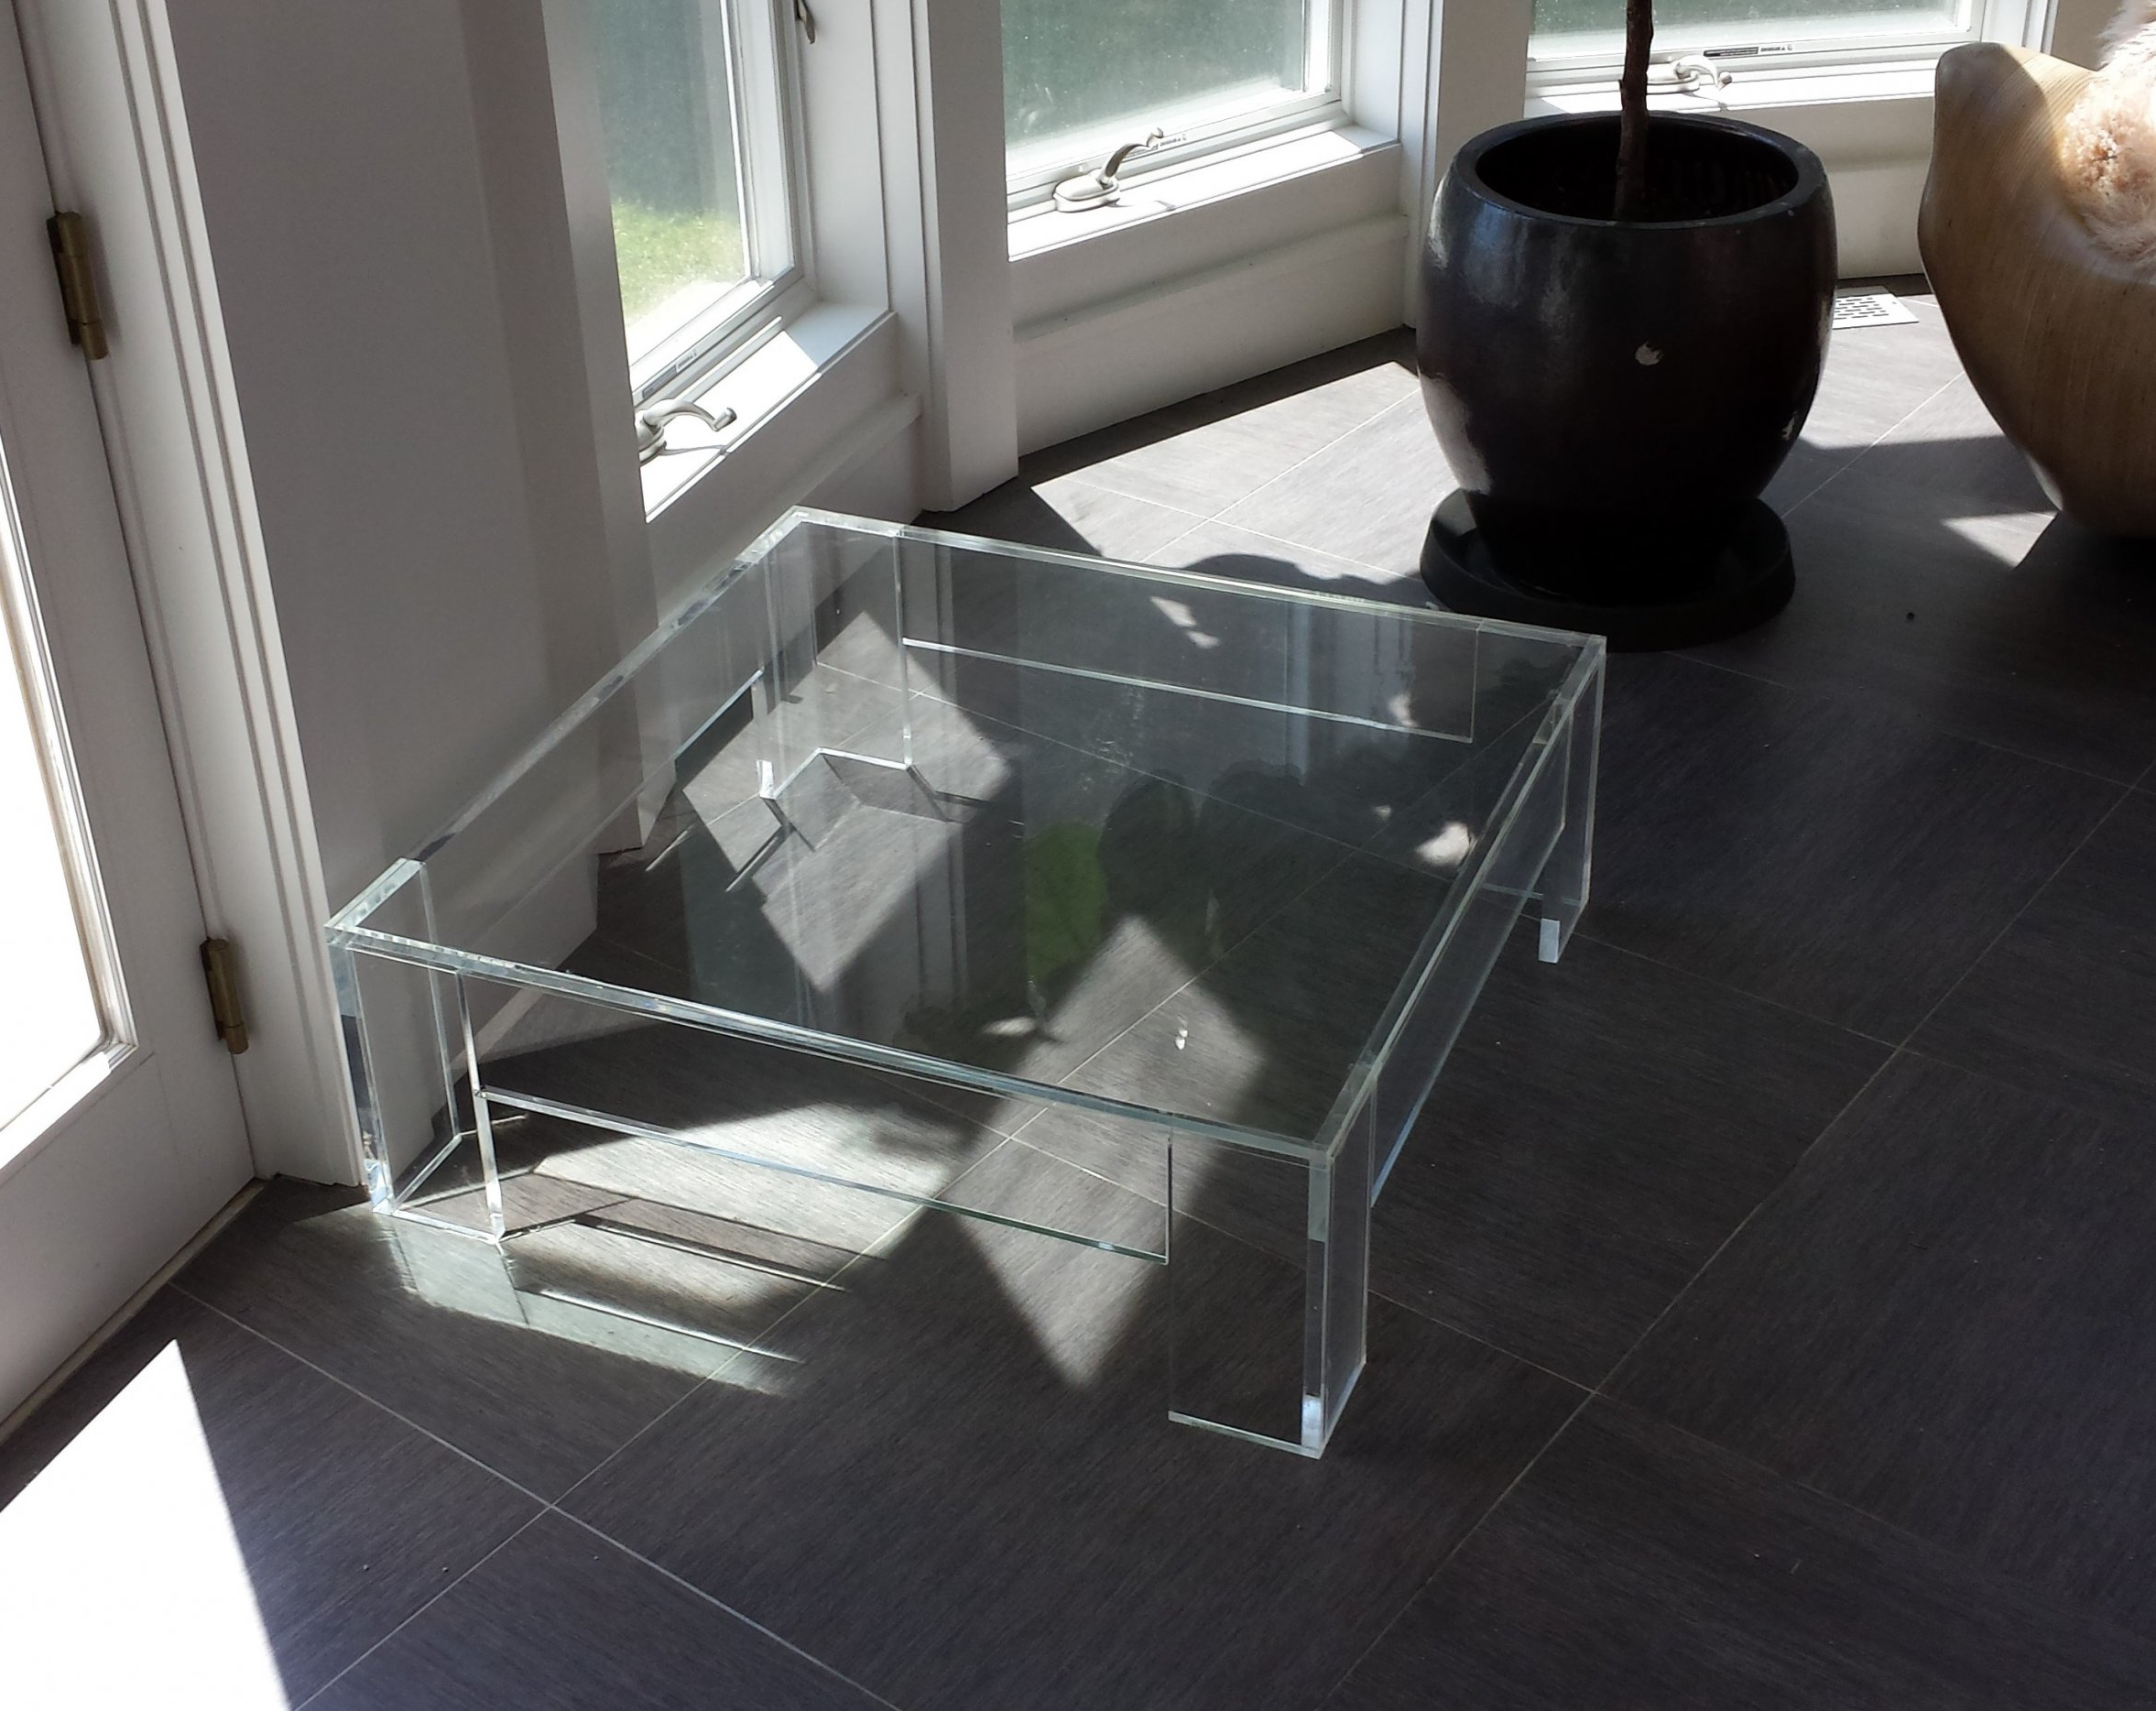 2018 Modern Acrylic Coffee Tables Regarding Modern Square Clear Acrylic Coffee Table With Shelf In Living Room (View 1 of 20)